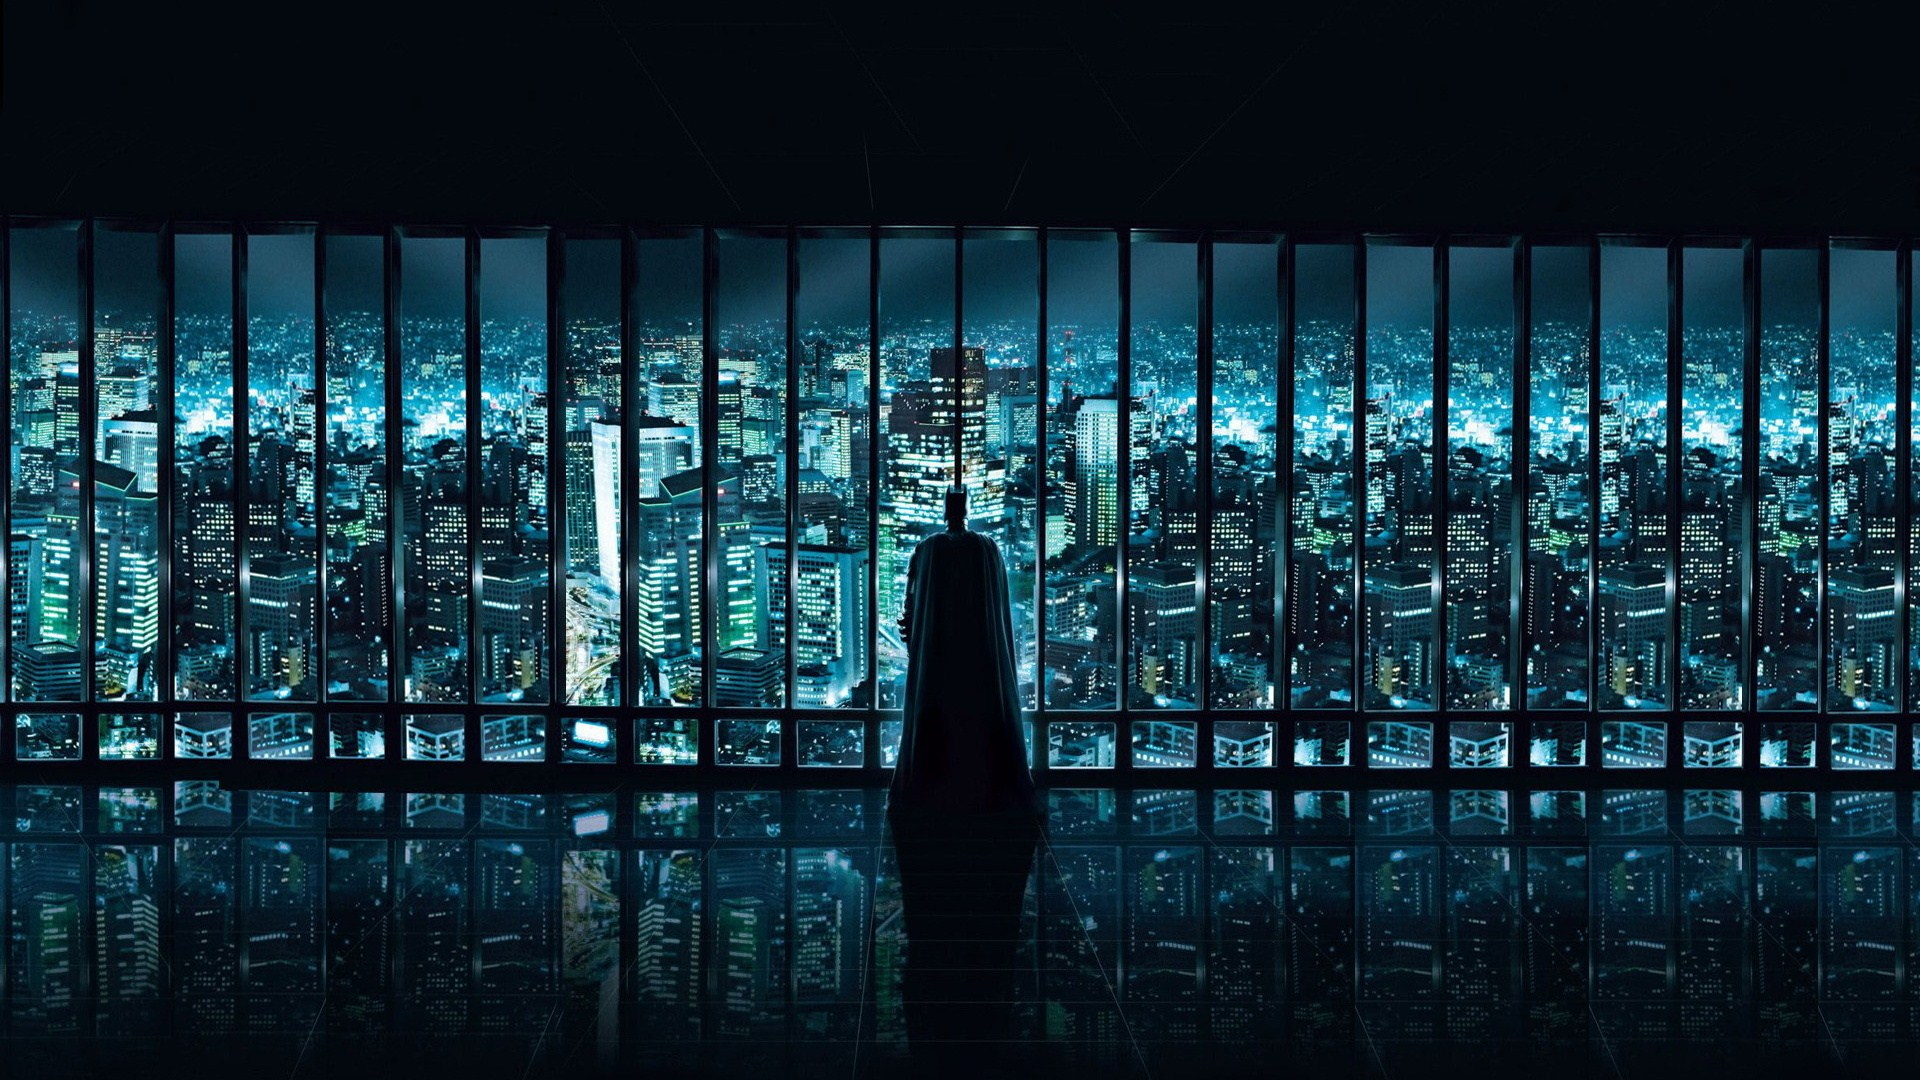 3bpblogspot UnrTL168R3s UJ9xCY Batman Dark Knight Returns